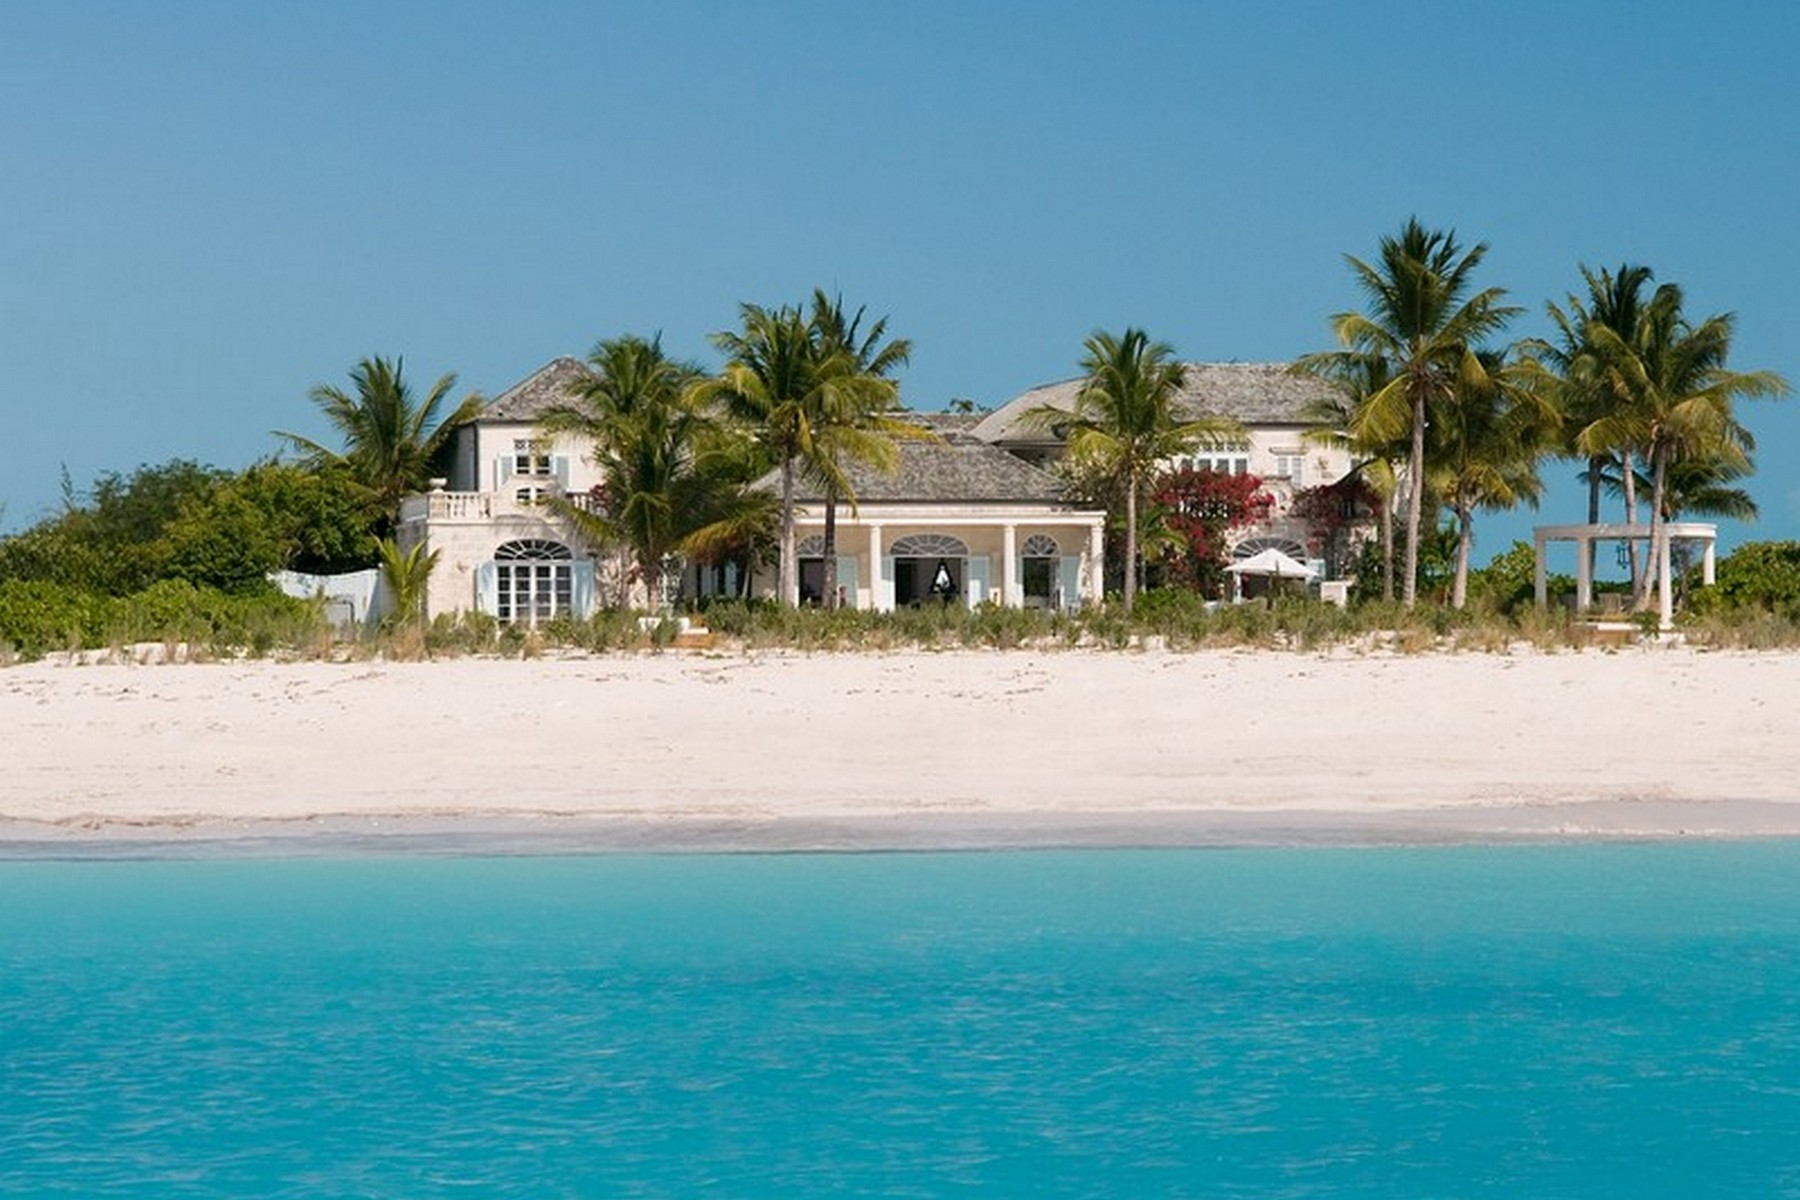 Single Family Home for Rent at Coral House Vacation Rental Beachfront Grace Bay, TCI BWI Turks And Caicos Islands